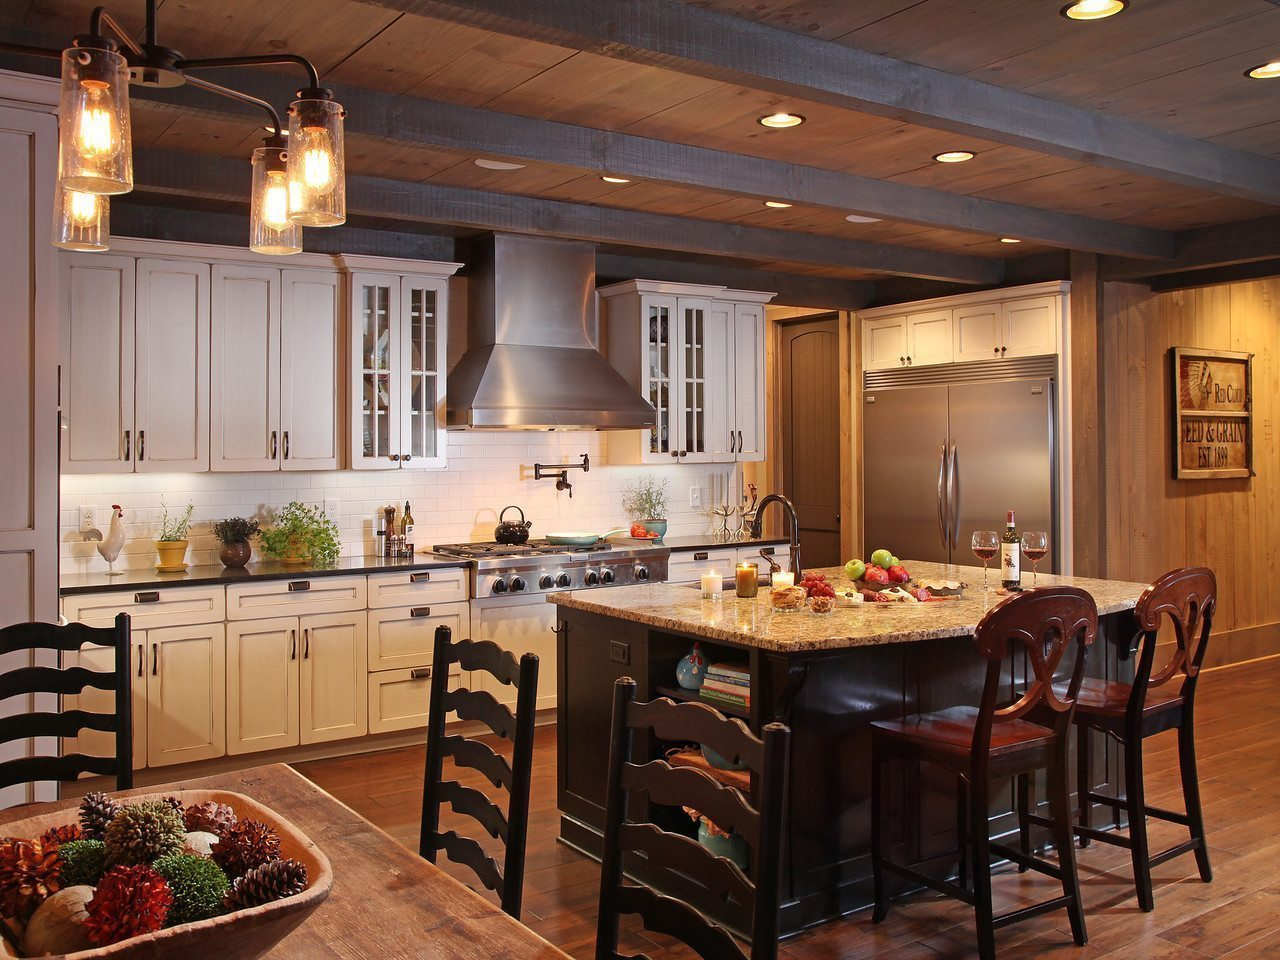 shady-oaks-kitchen-3